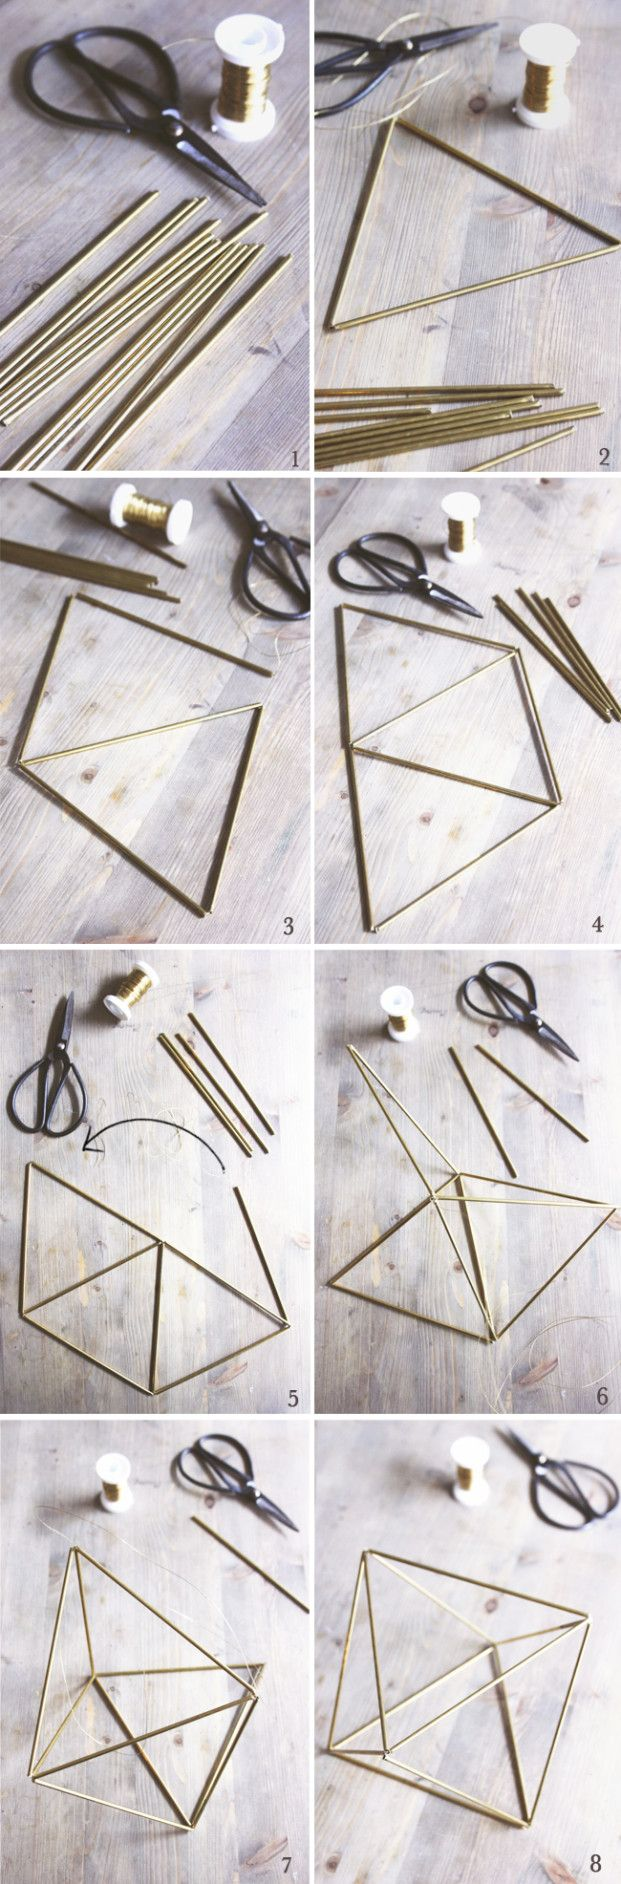 The bride barefoot - DiY - Realize a brass Himmeli